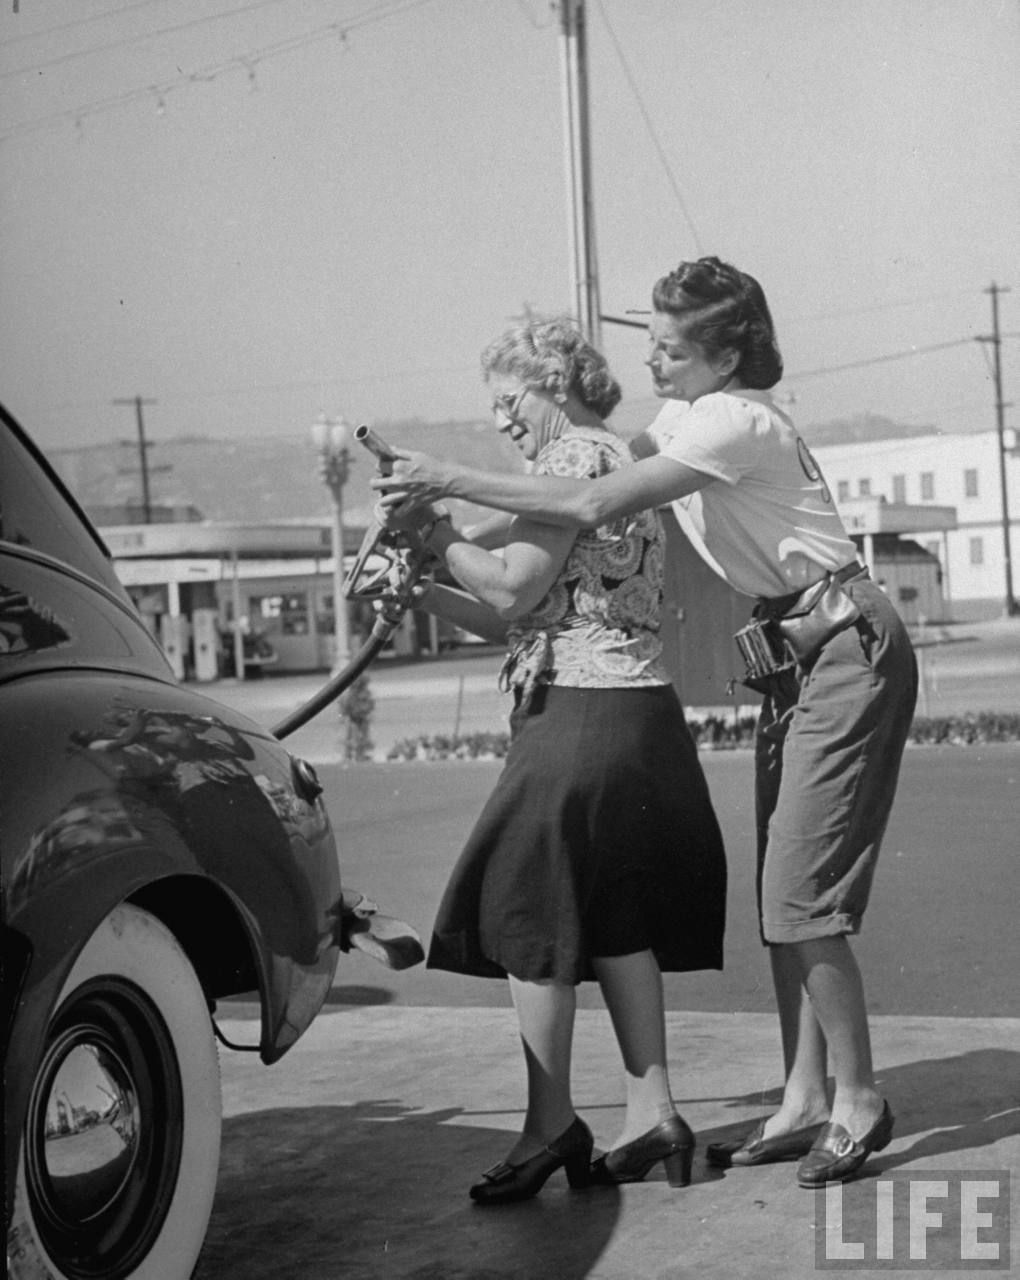 Pin by David Lawson on gas stations Gas pumps, Gas